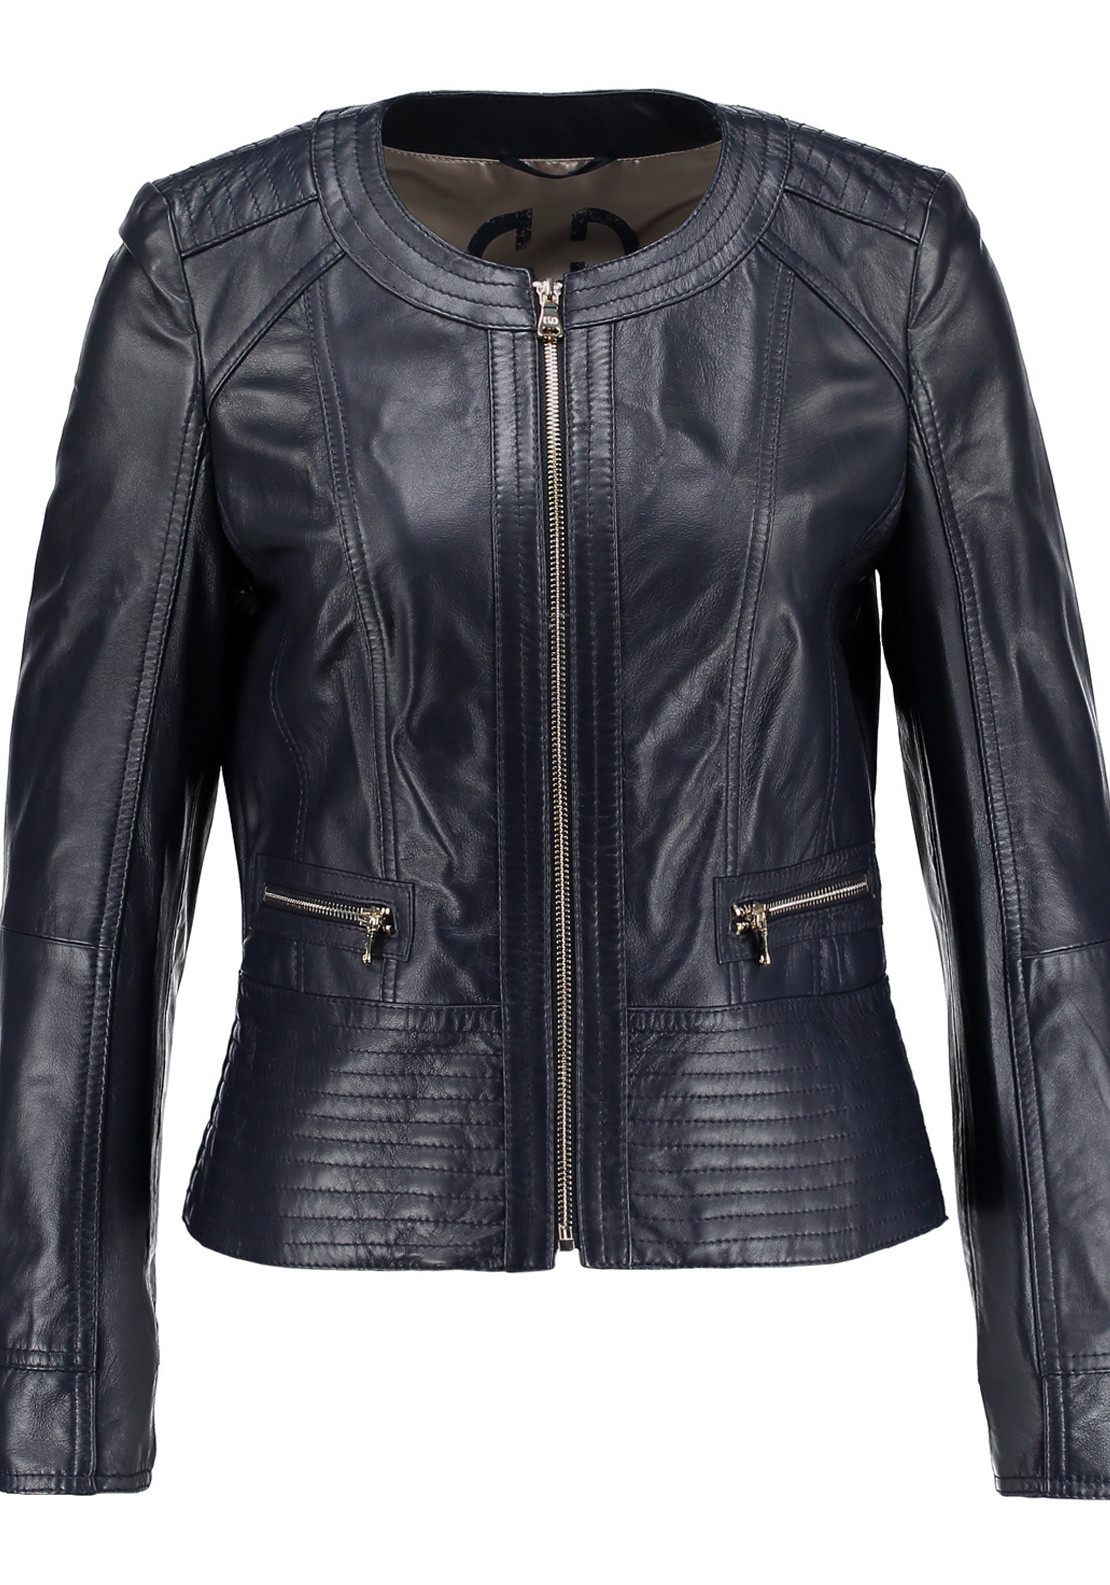 Gerry Weber Leather Bomber Jacket, Navy